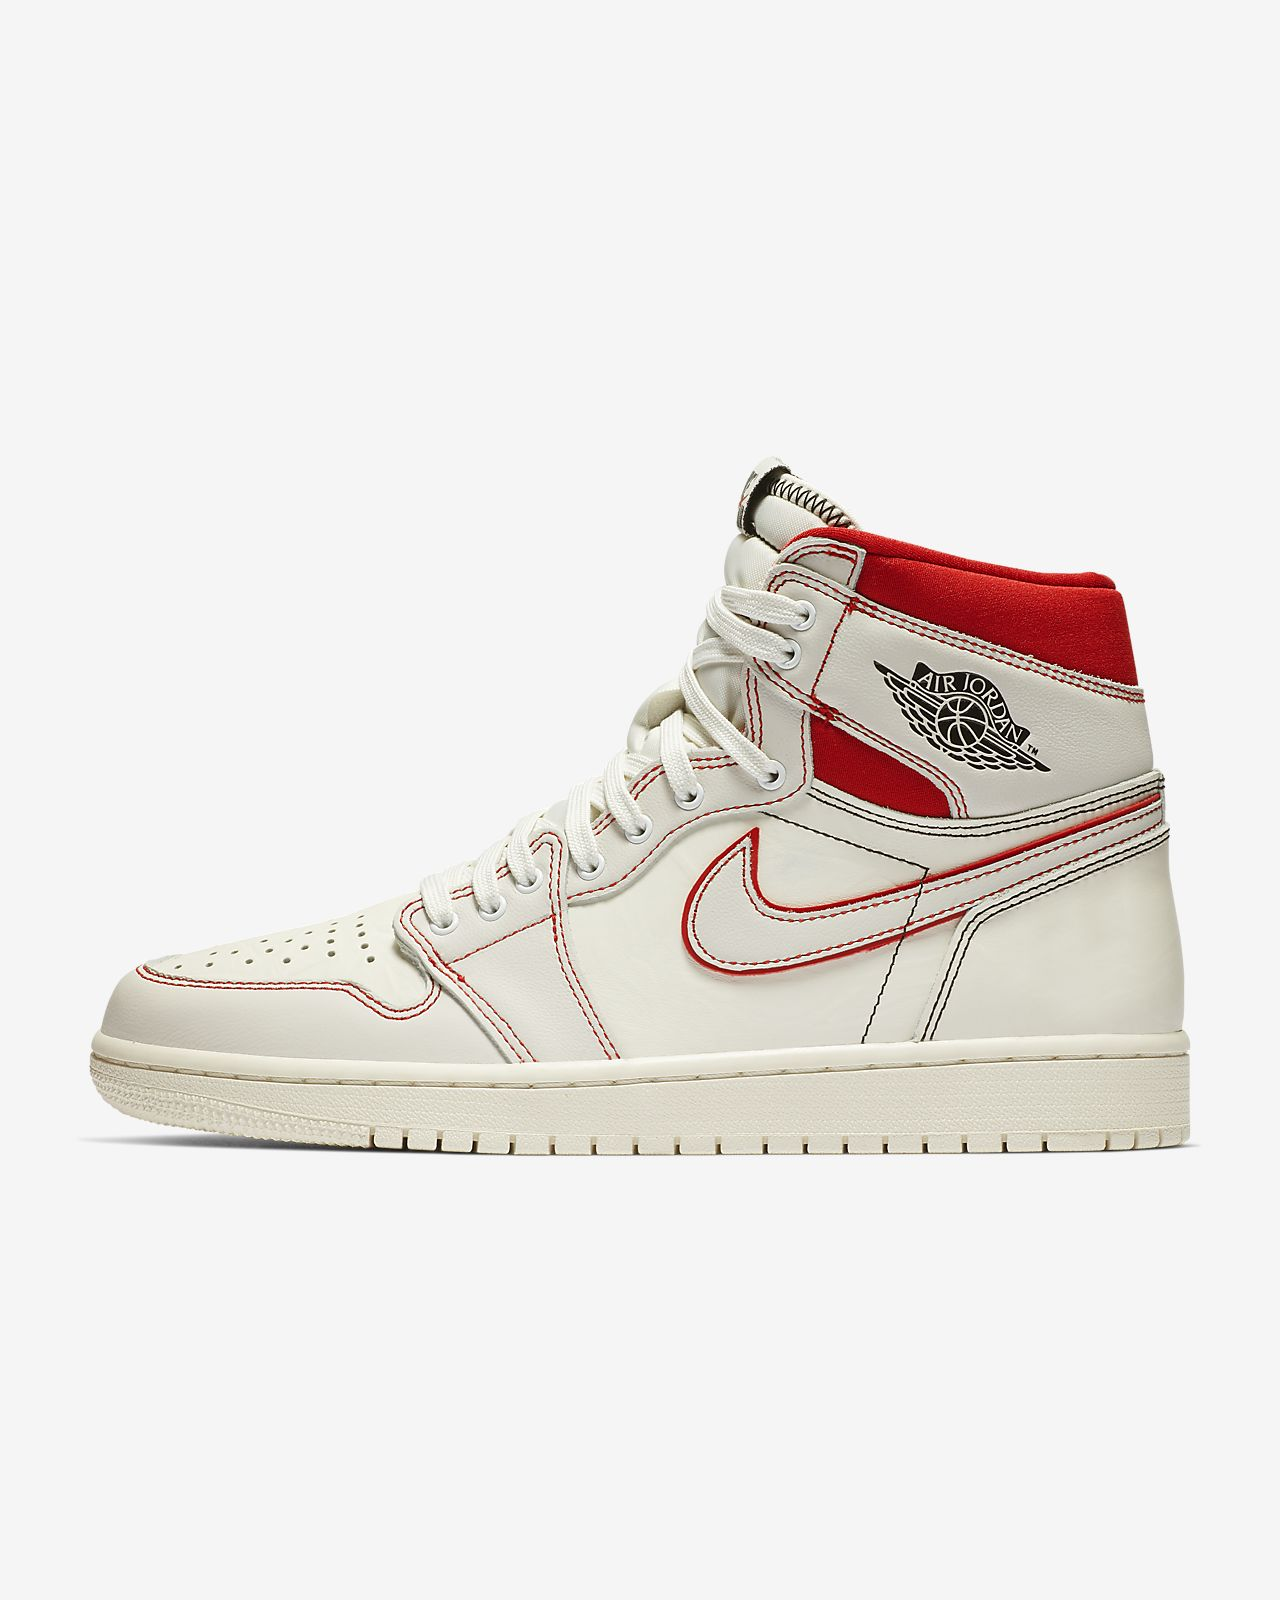 new styles b73d4 af45a ... Air Jordan 1 Retro High OG Shoe